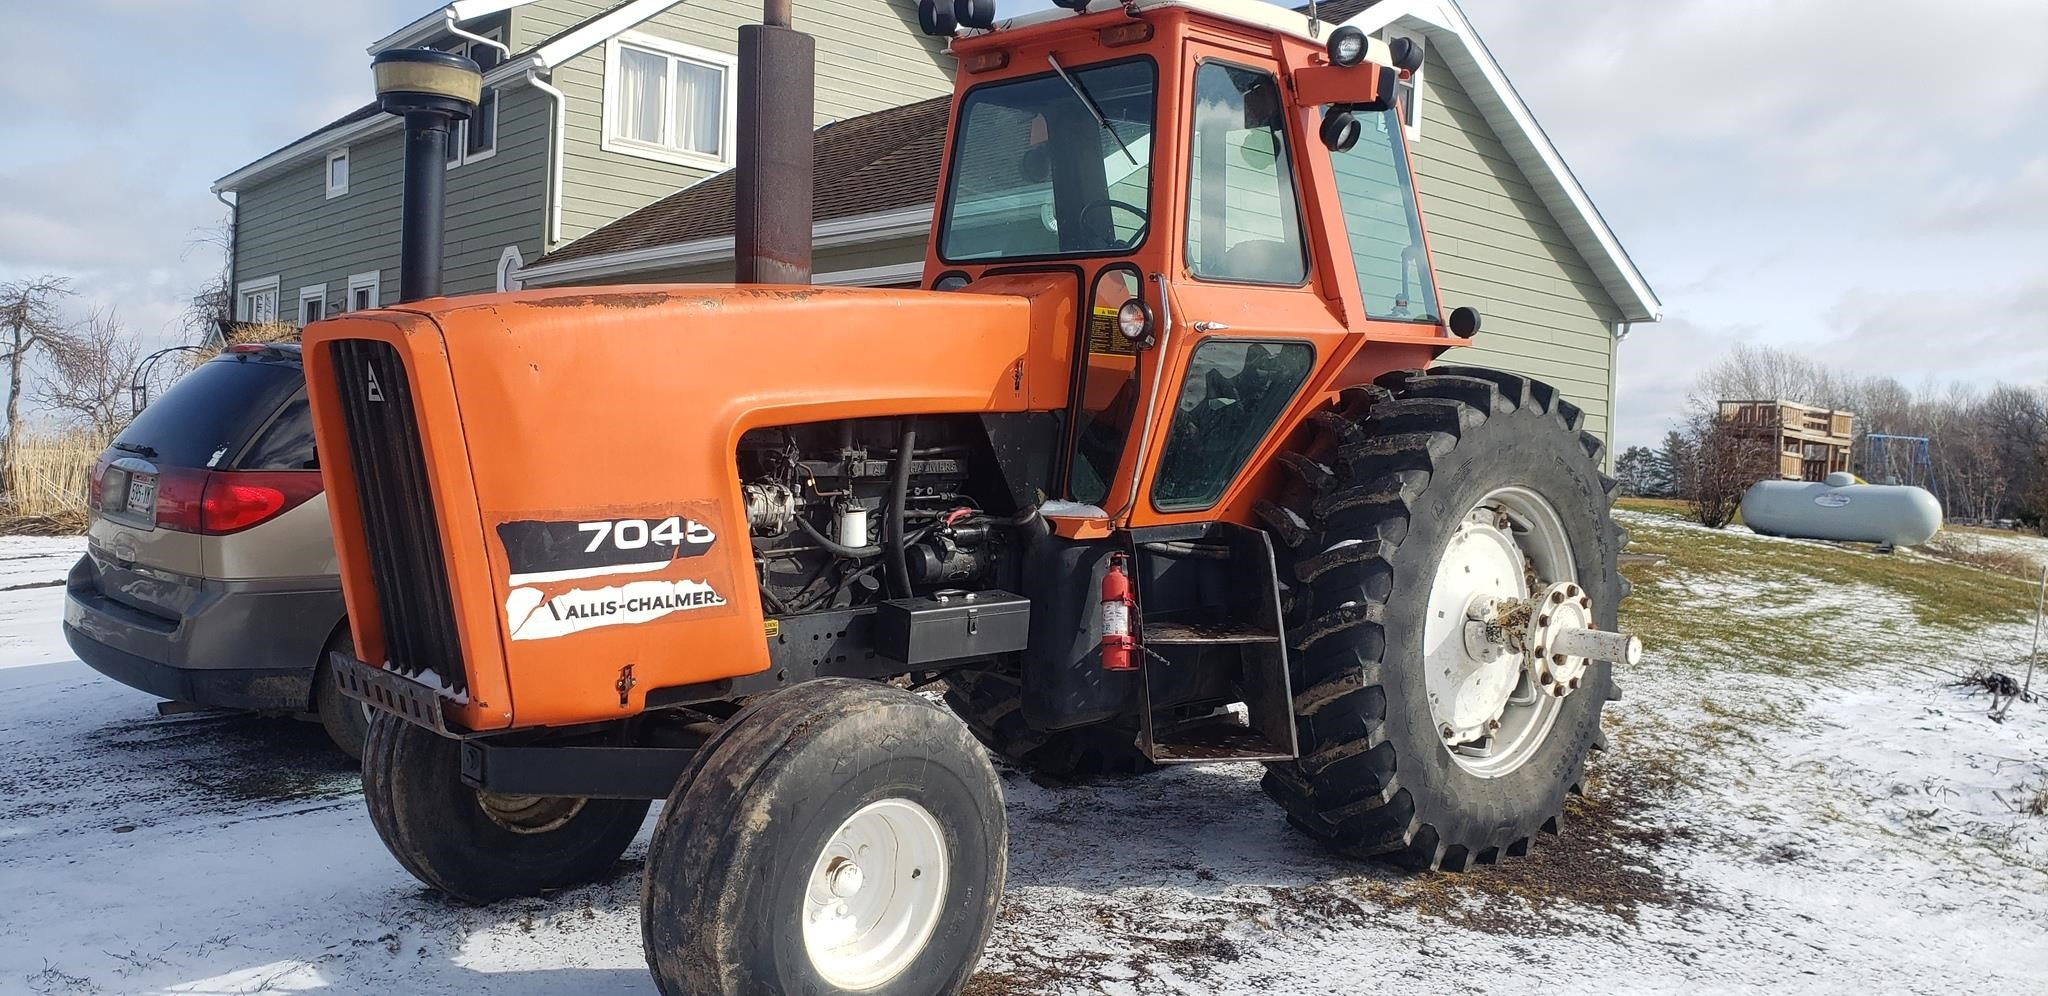 Allis Chalmers Tractors For Sale In Wisconsin 24 Listings Tractorhouse Com Page 1 Of 1